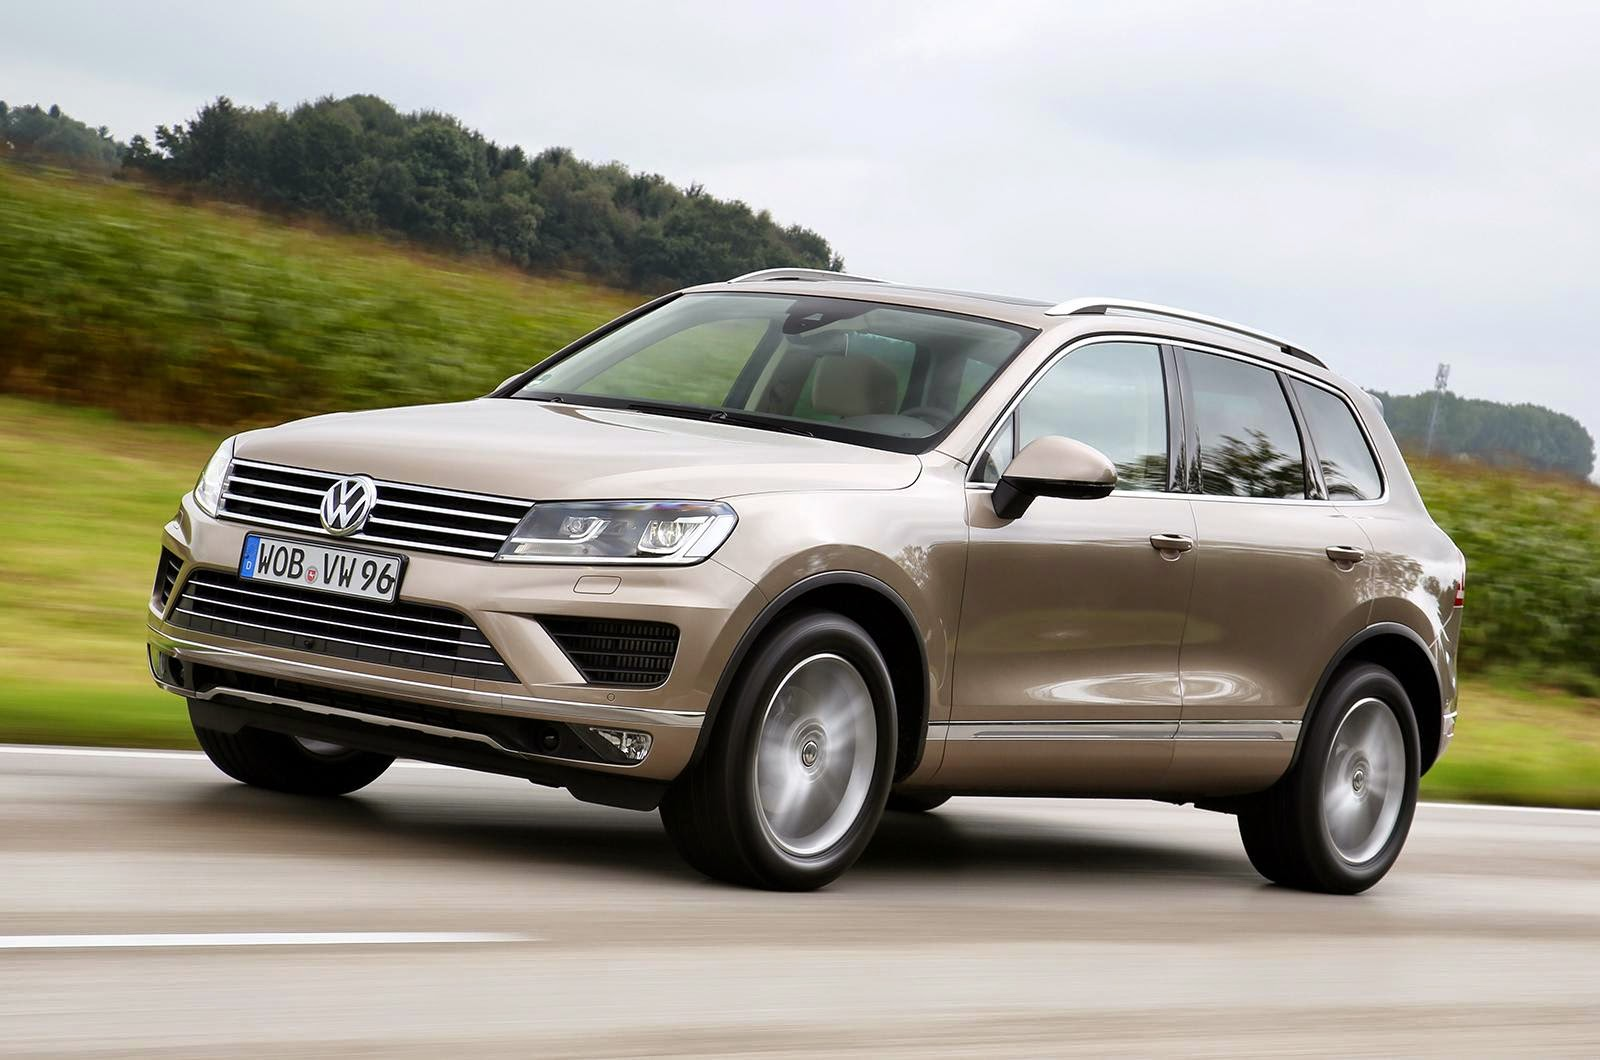 automobile status 2014 volkswagen touareg 3 0 tdi review. Black Bedroom Furniture Sets. Home Design Ideas